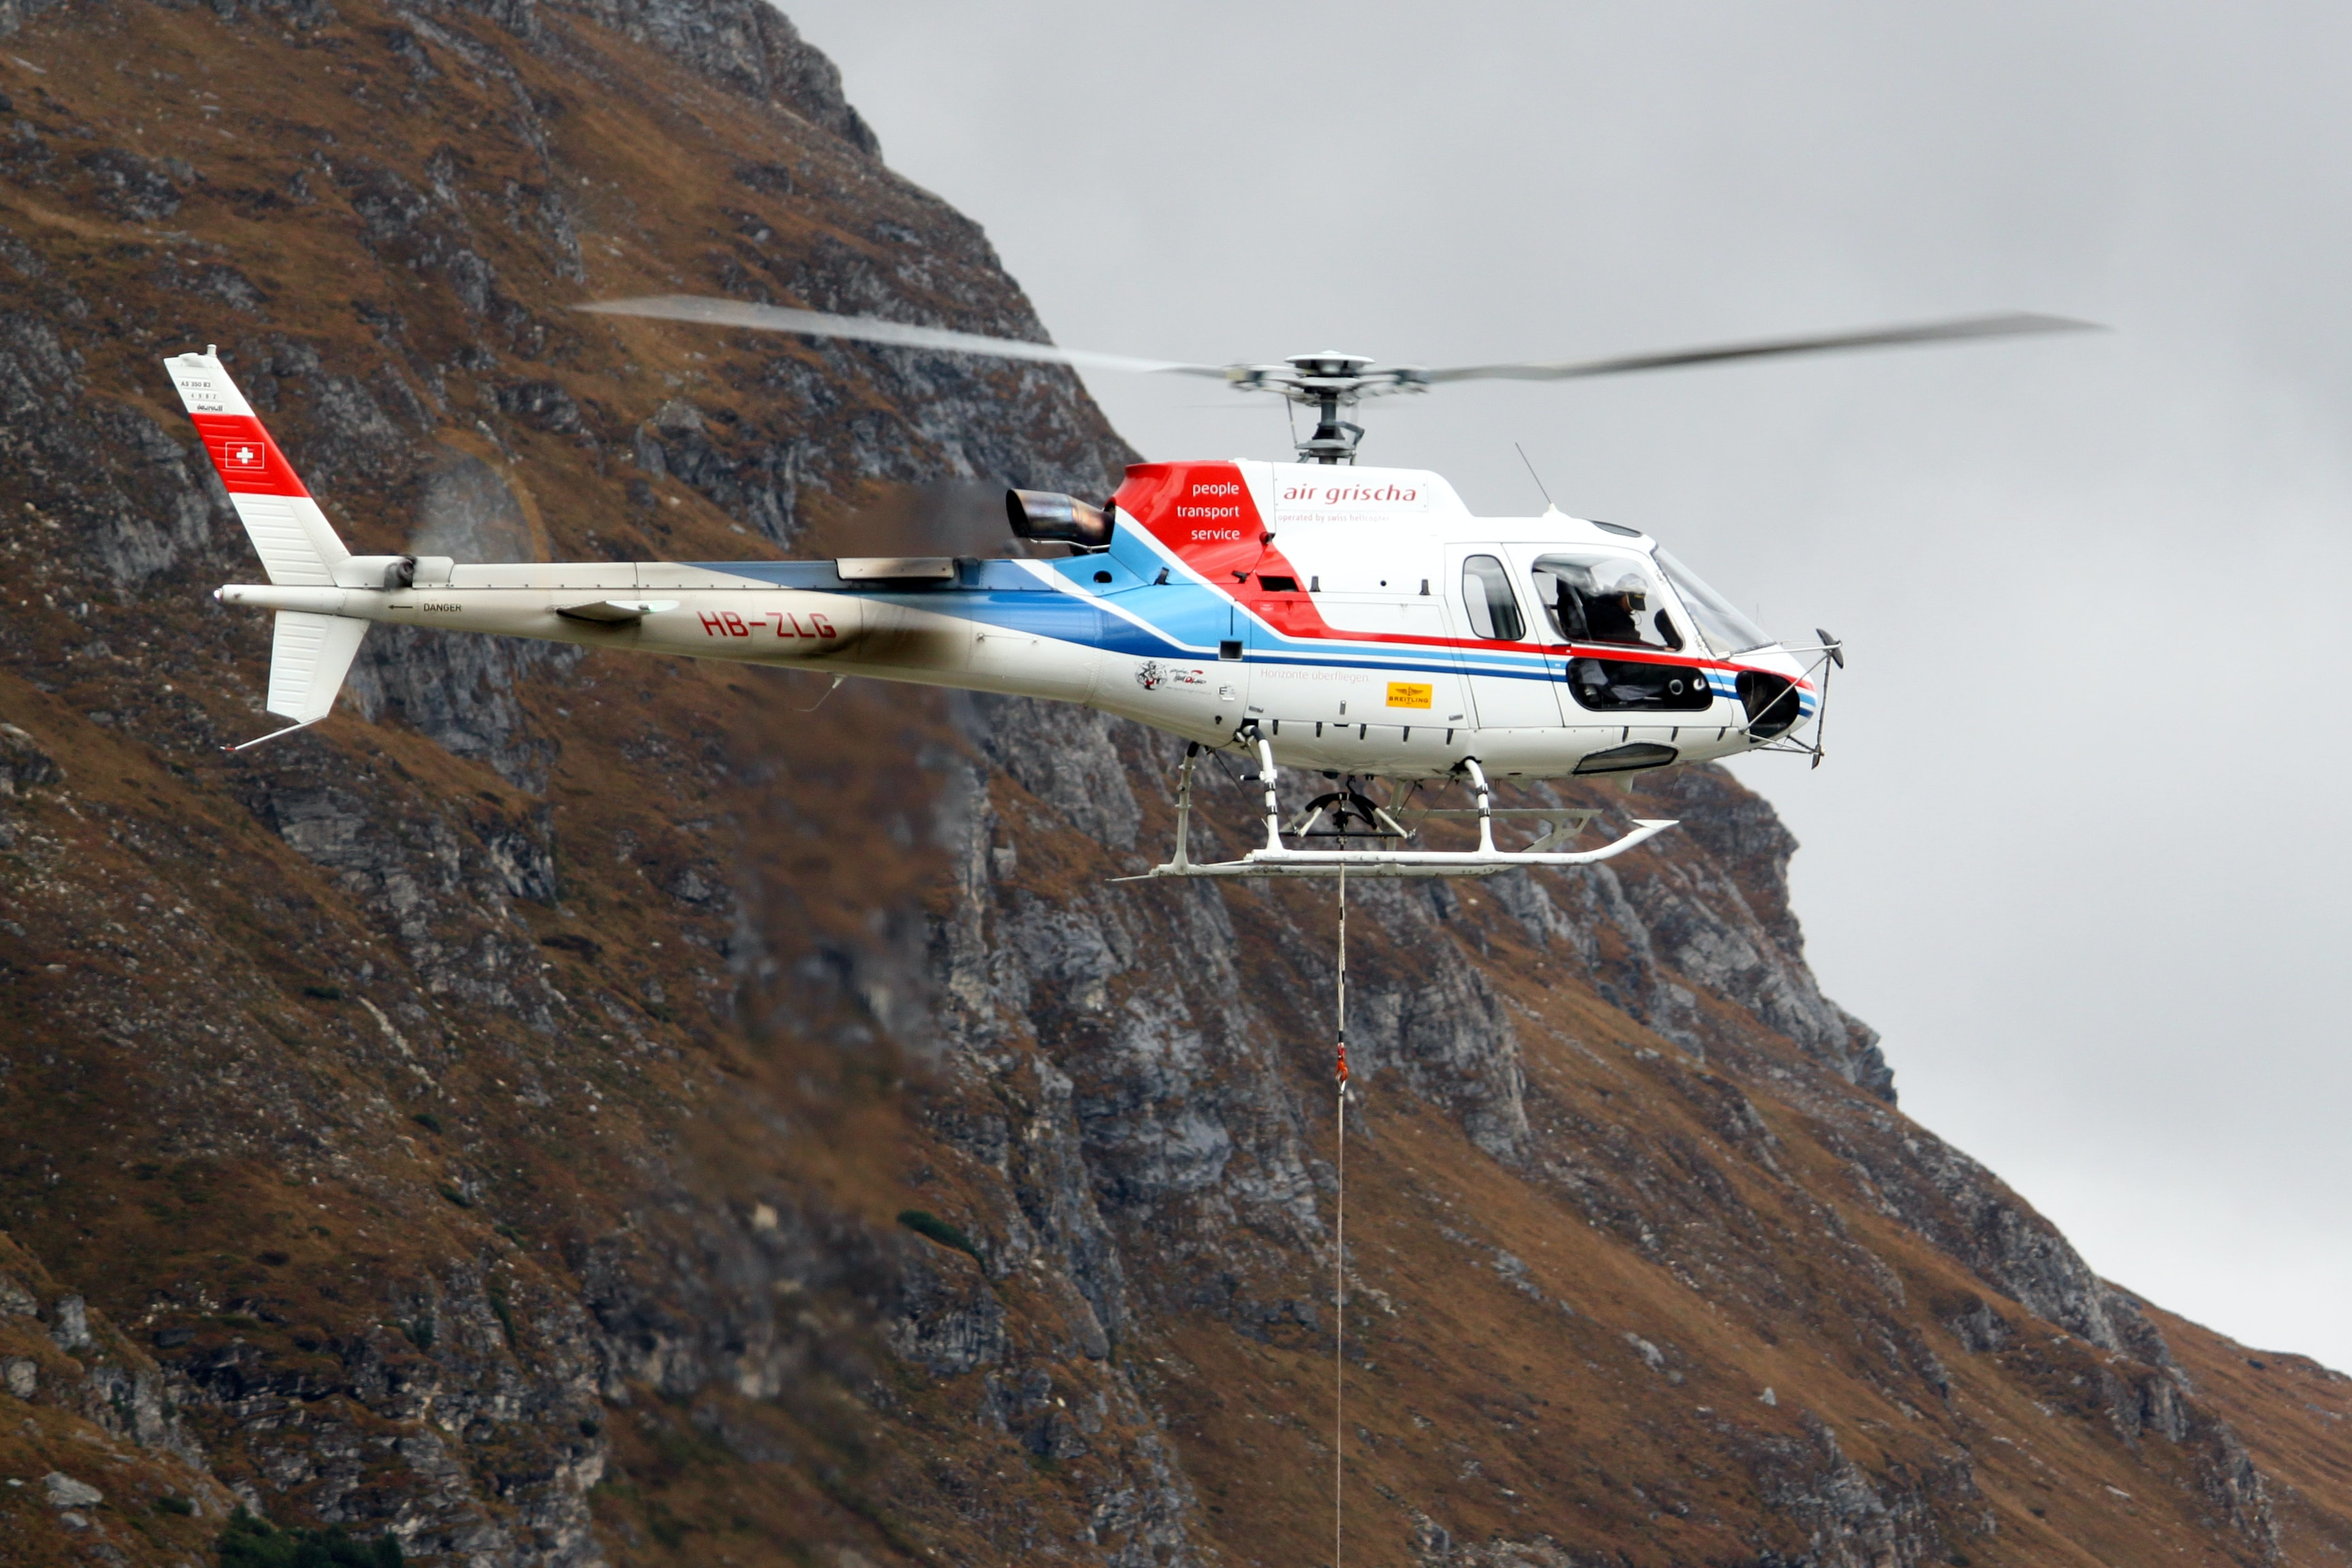 White, blue, and red helicopter rescue in Lago di Lei